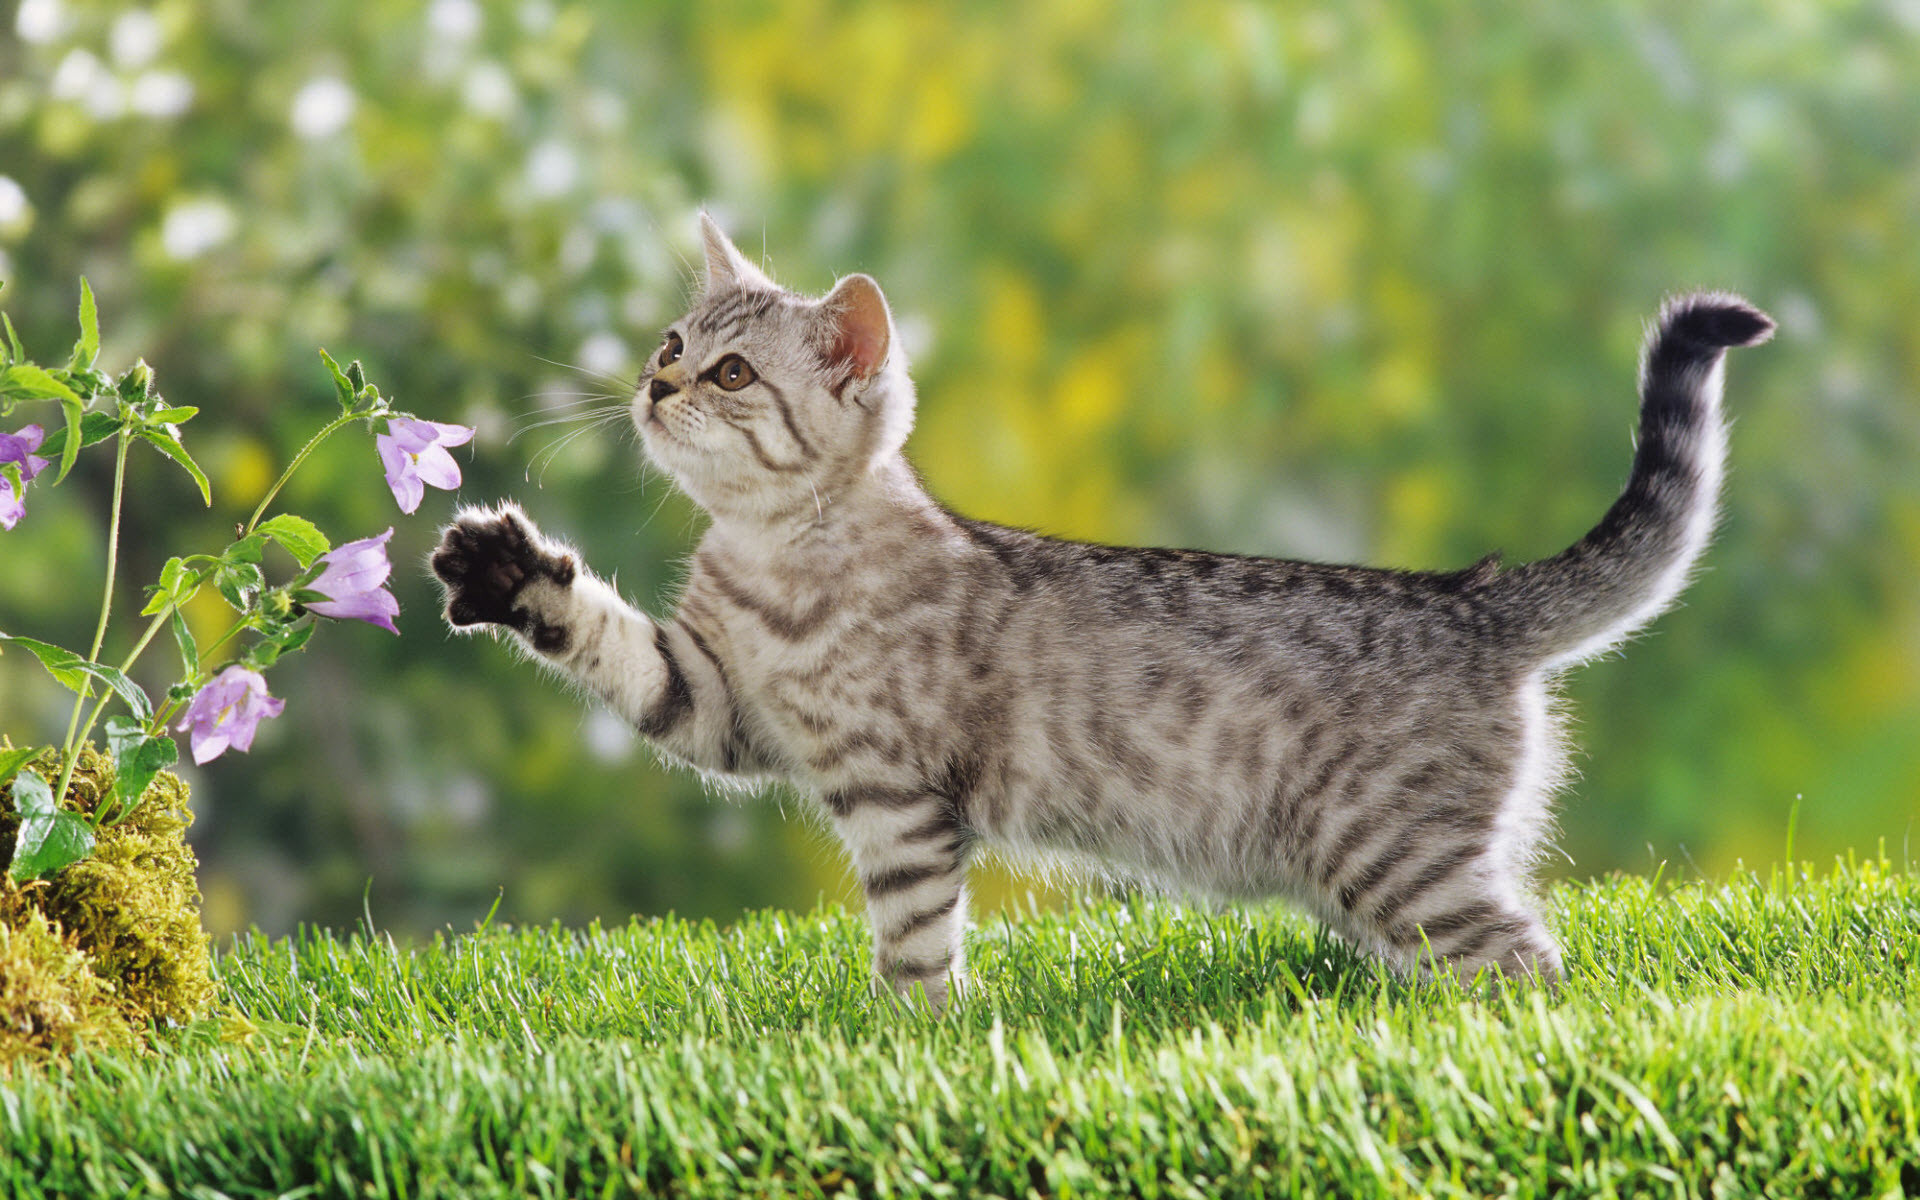 cute wallpaper cat photo #facts – More info about cat at  Catsincare.com